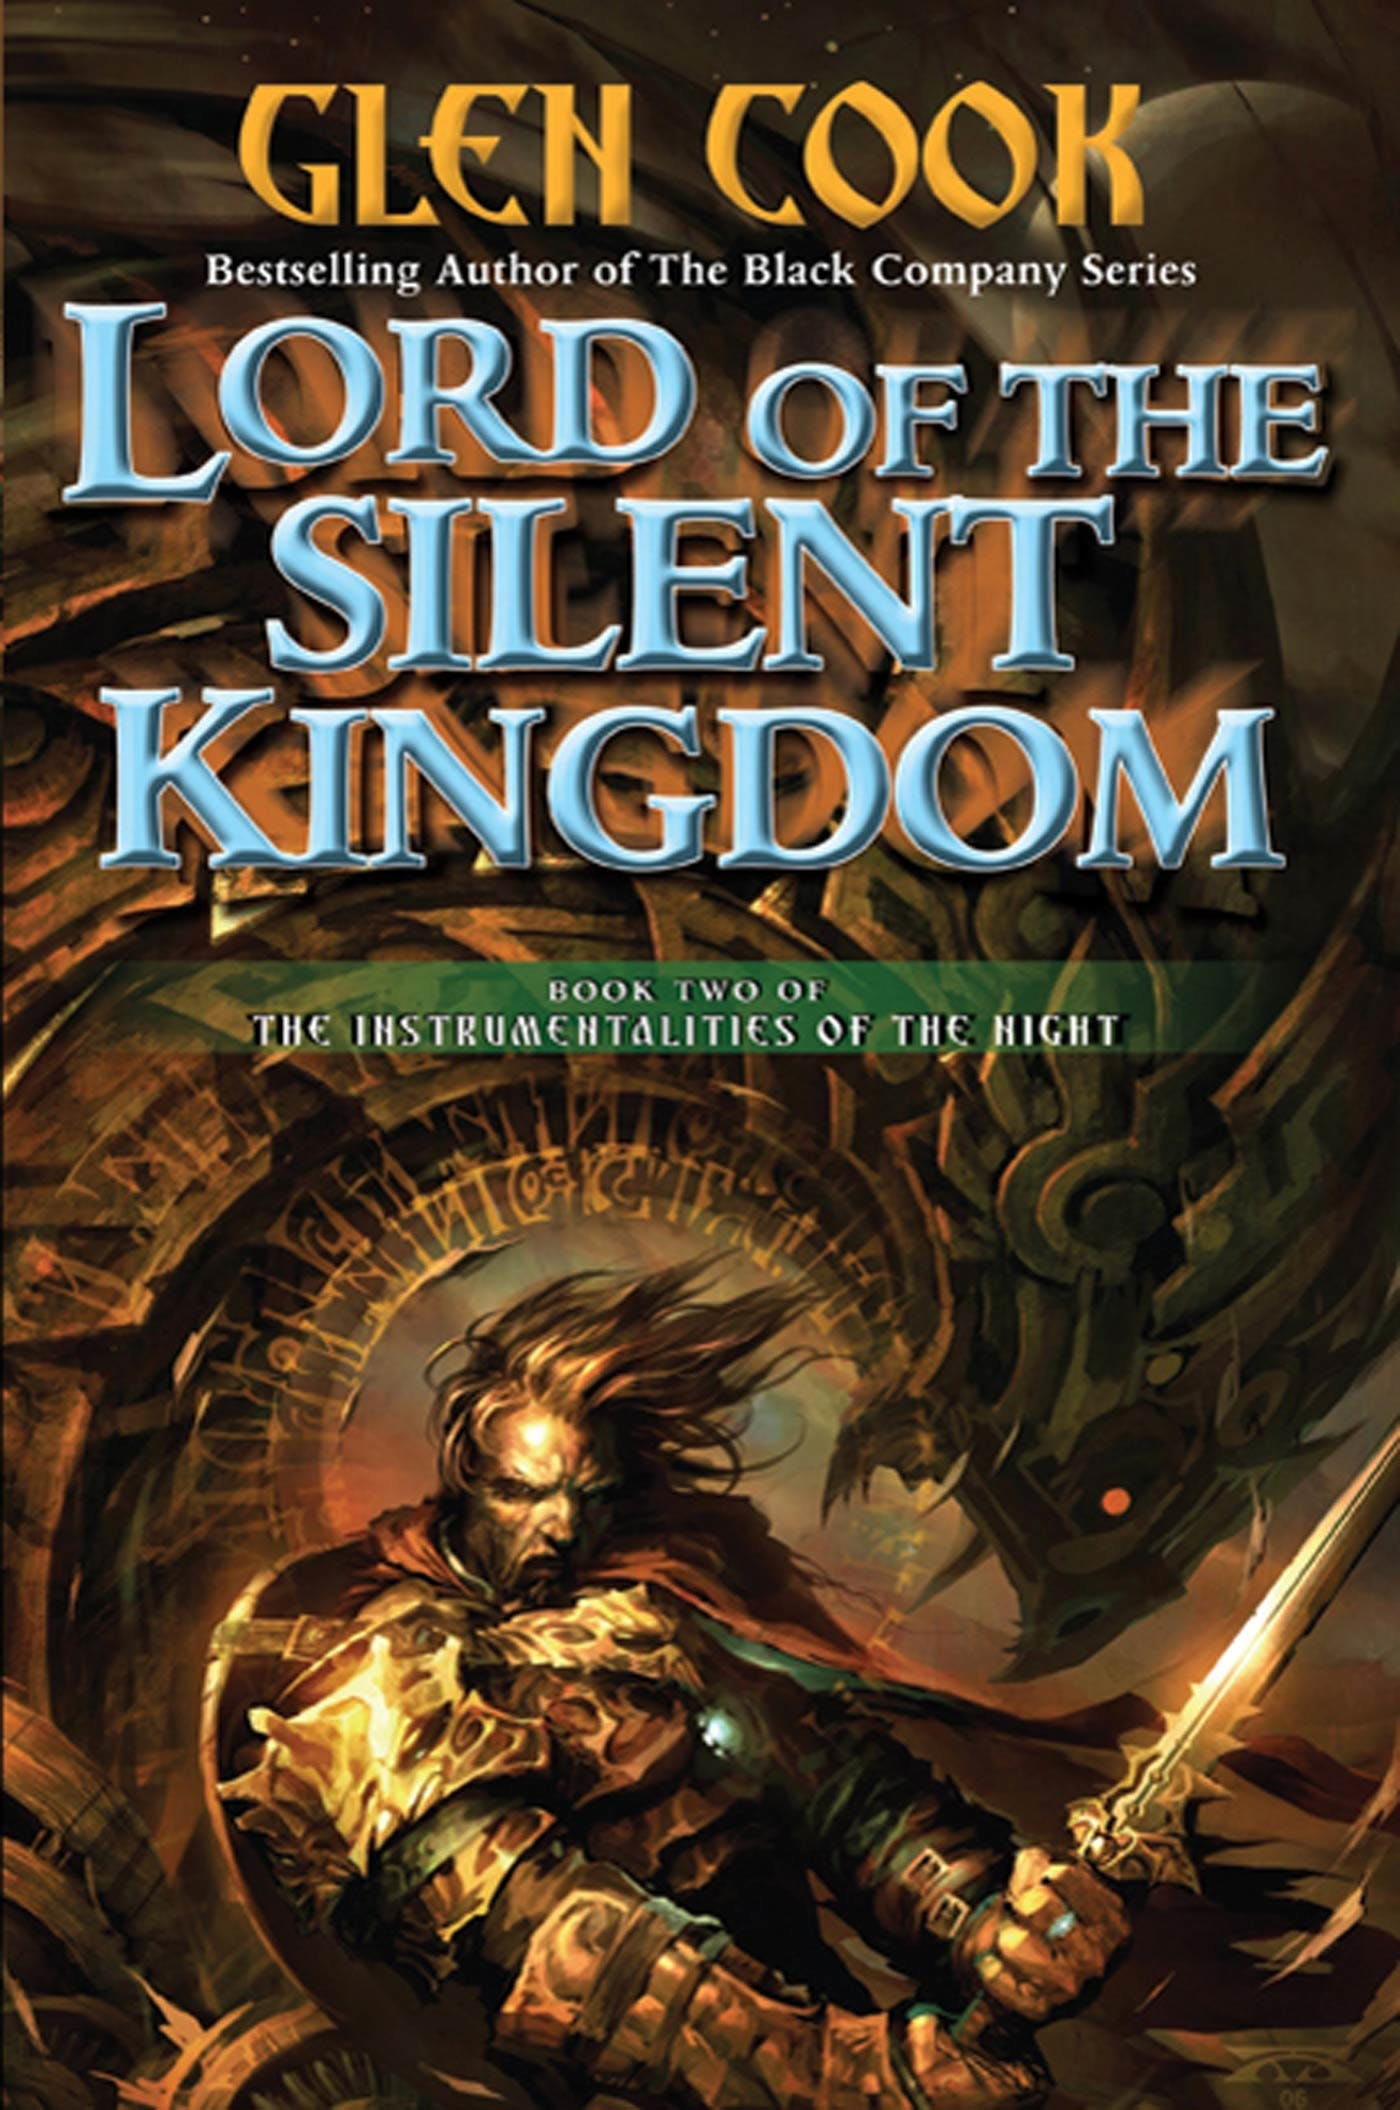 Image of Lord of the Silent Kingdom